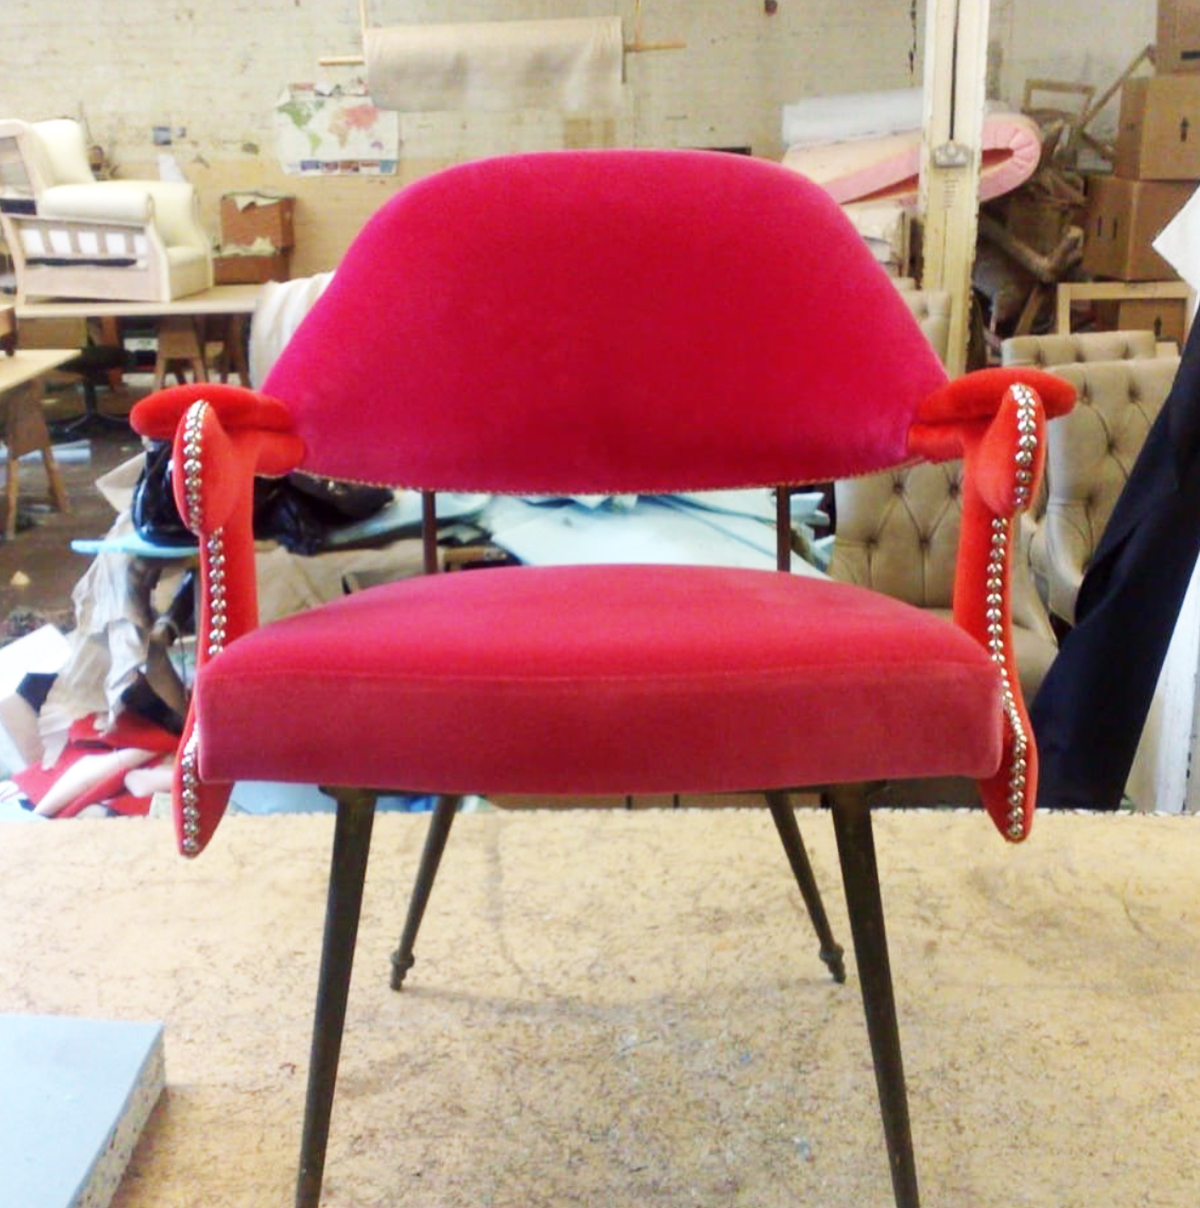 rock-pink-chair